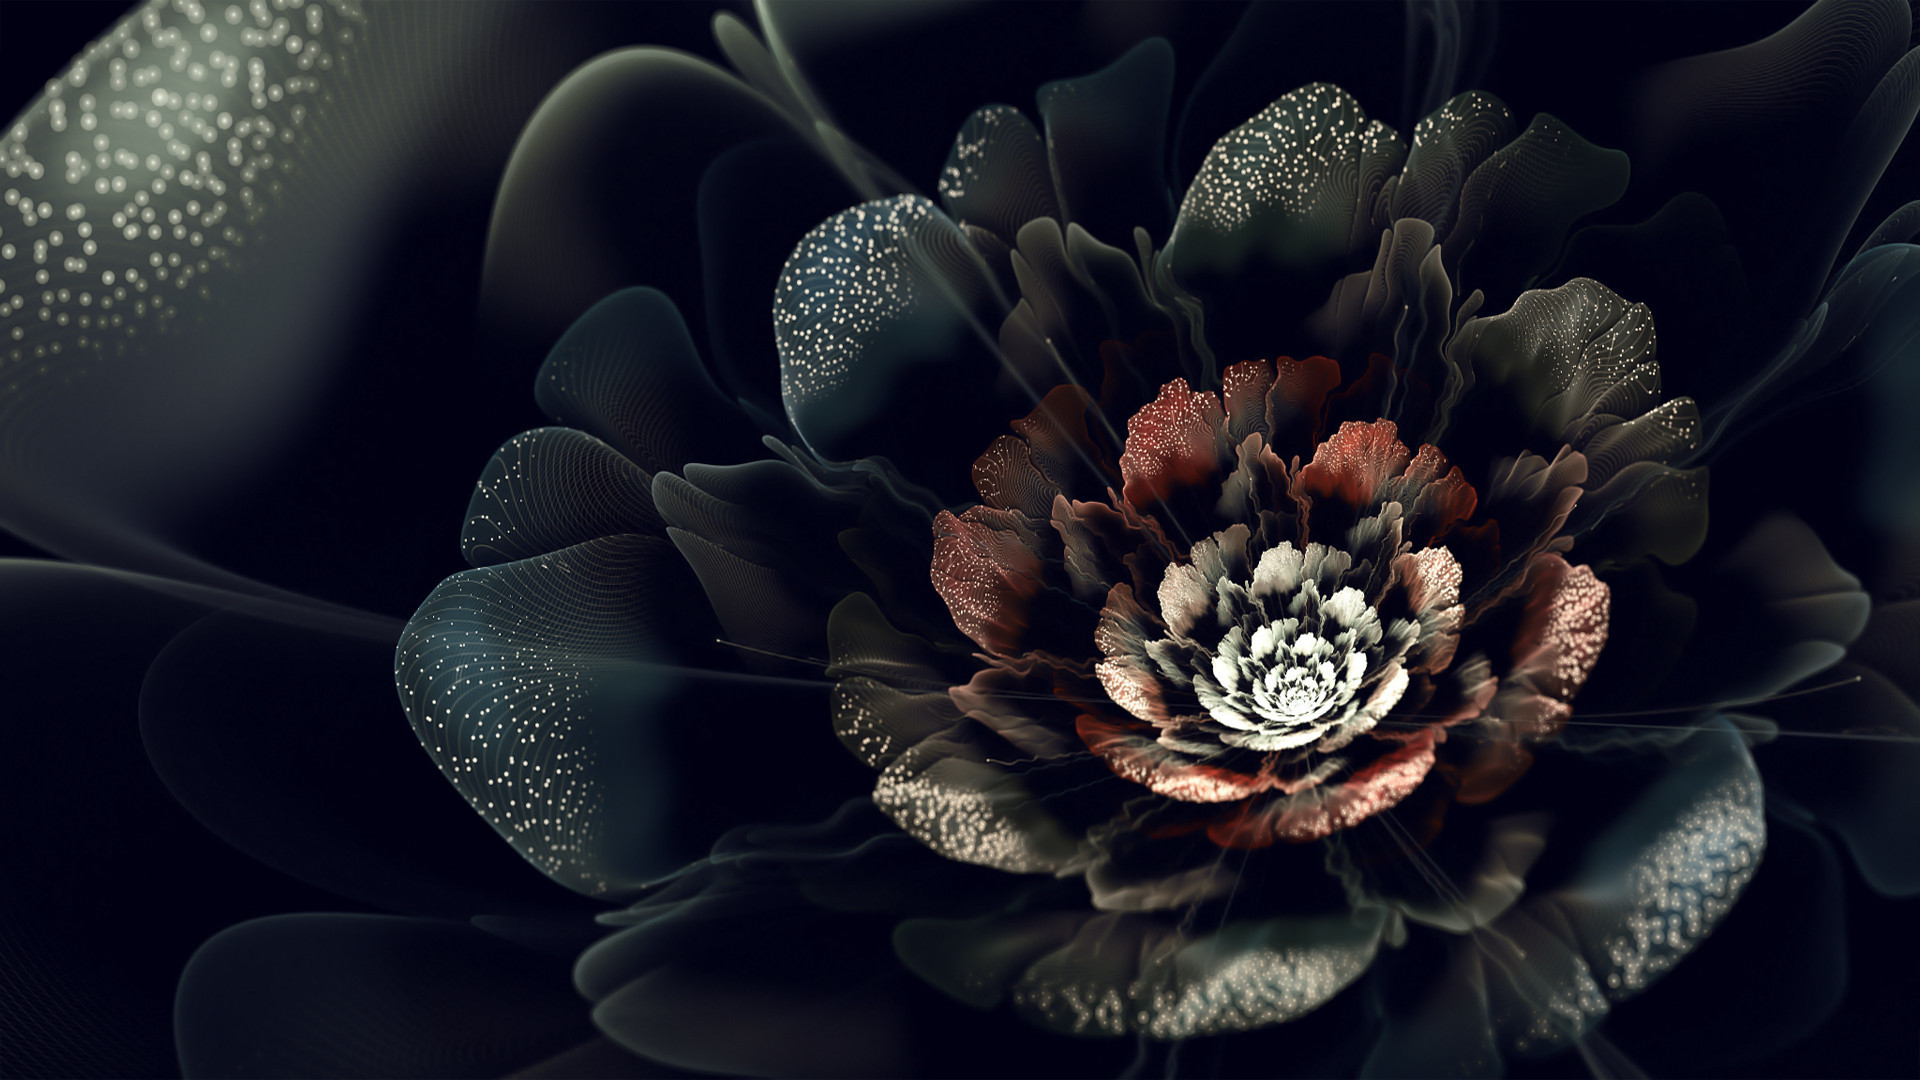 Black Rose Backgrounds 50 Pictures